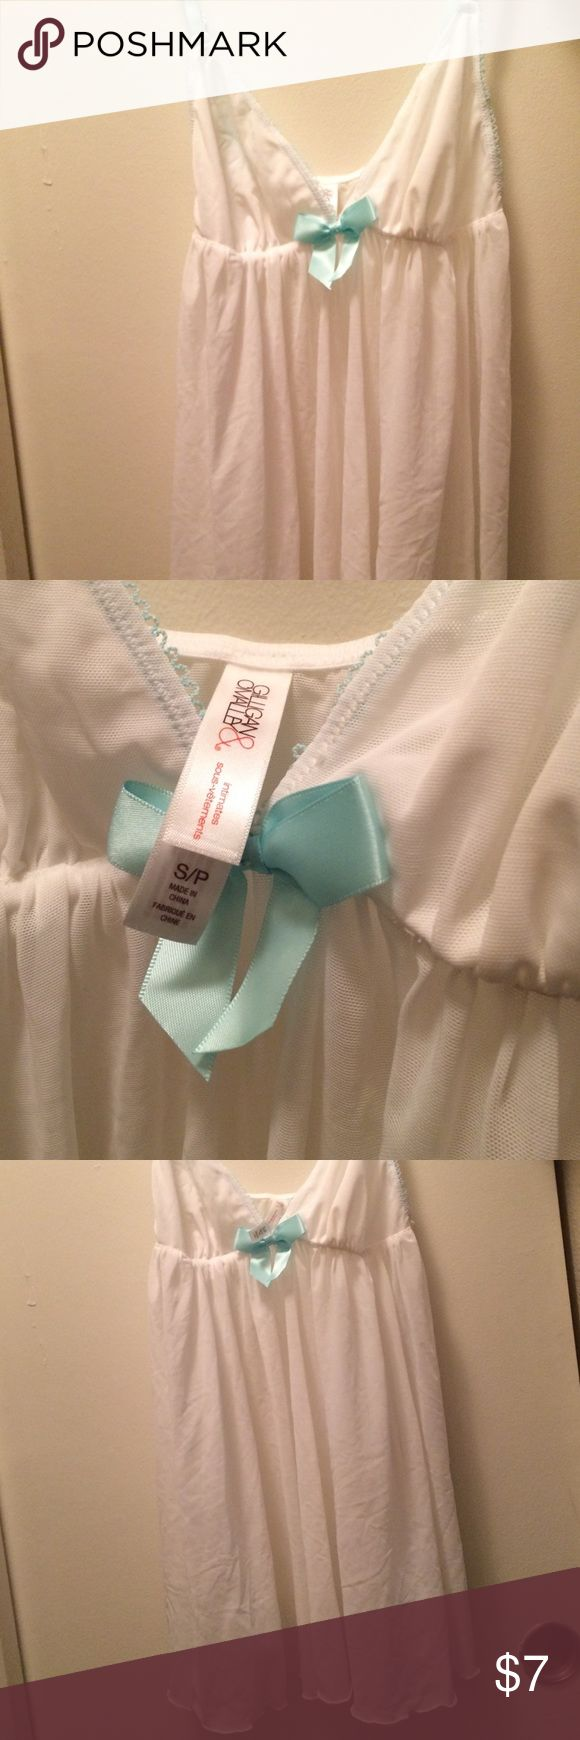 White and turquoise nightie NEVER WORN. It was a gag gift for my birthday and it sat in my pajama drawer for a few months Gilligan & O'Malley Intimates & Sleepwear Chemises & Slips